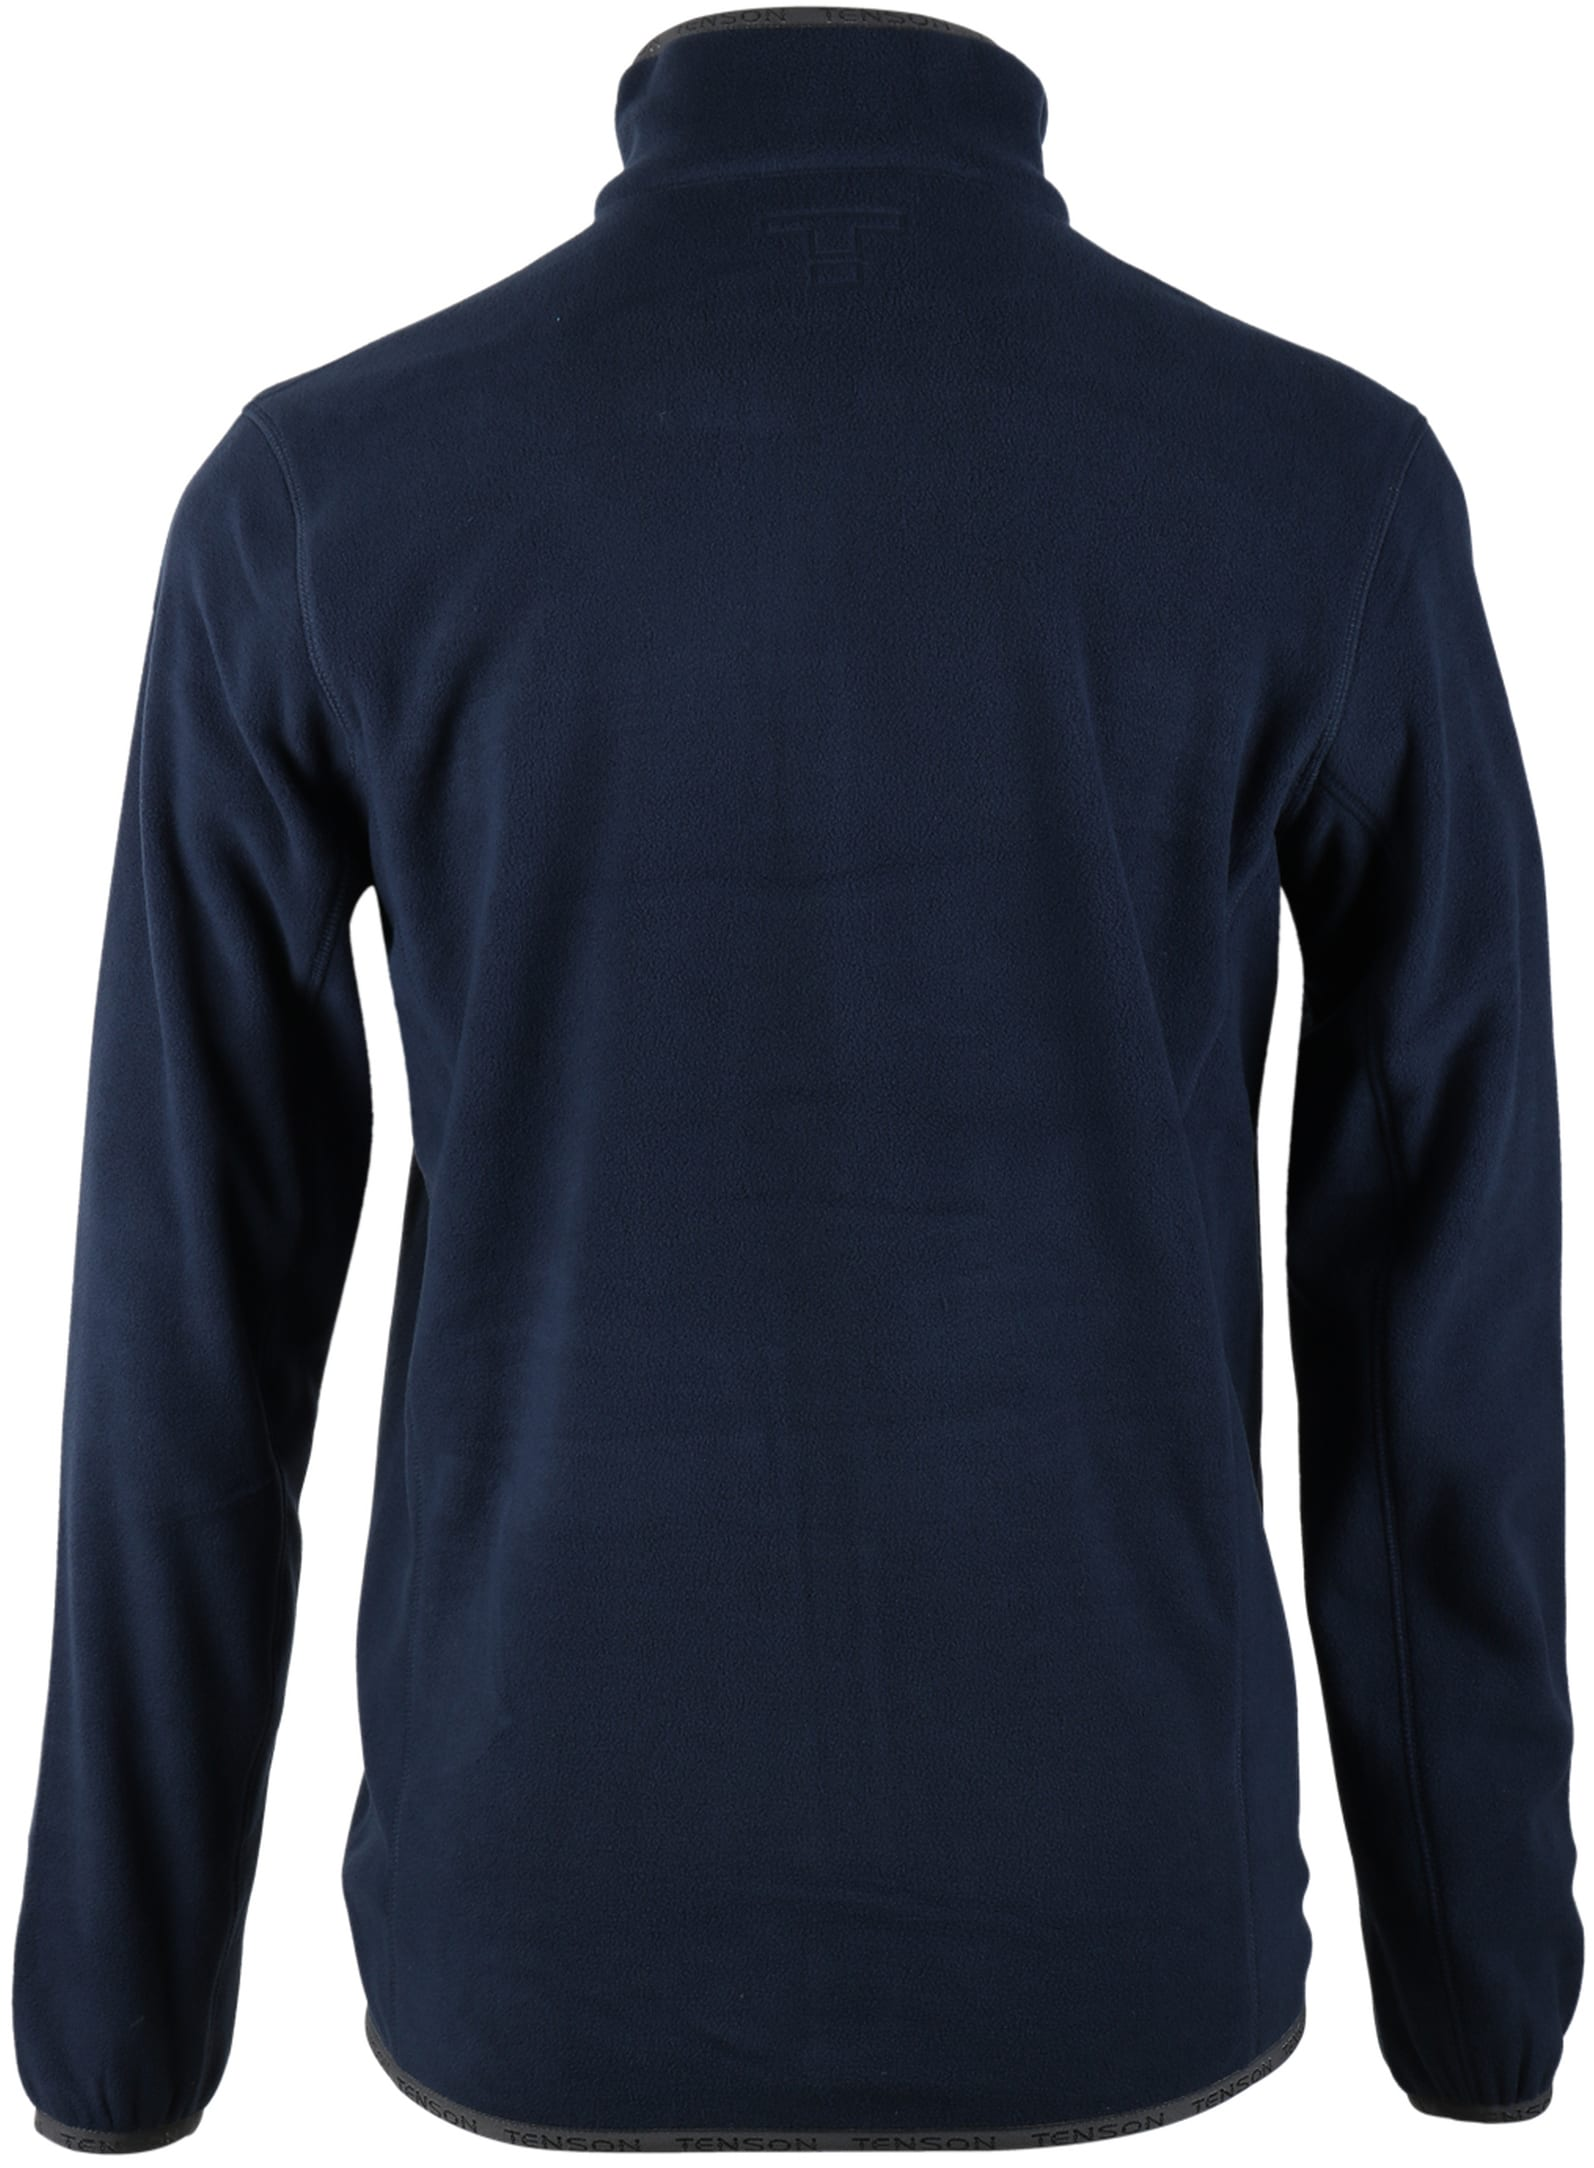 Tenson Fleece Cardigan Miller Navy foto 4